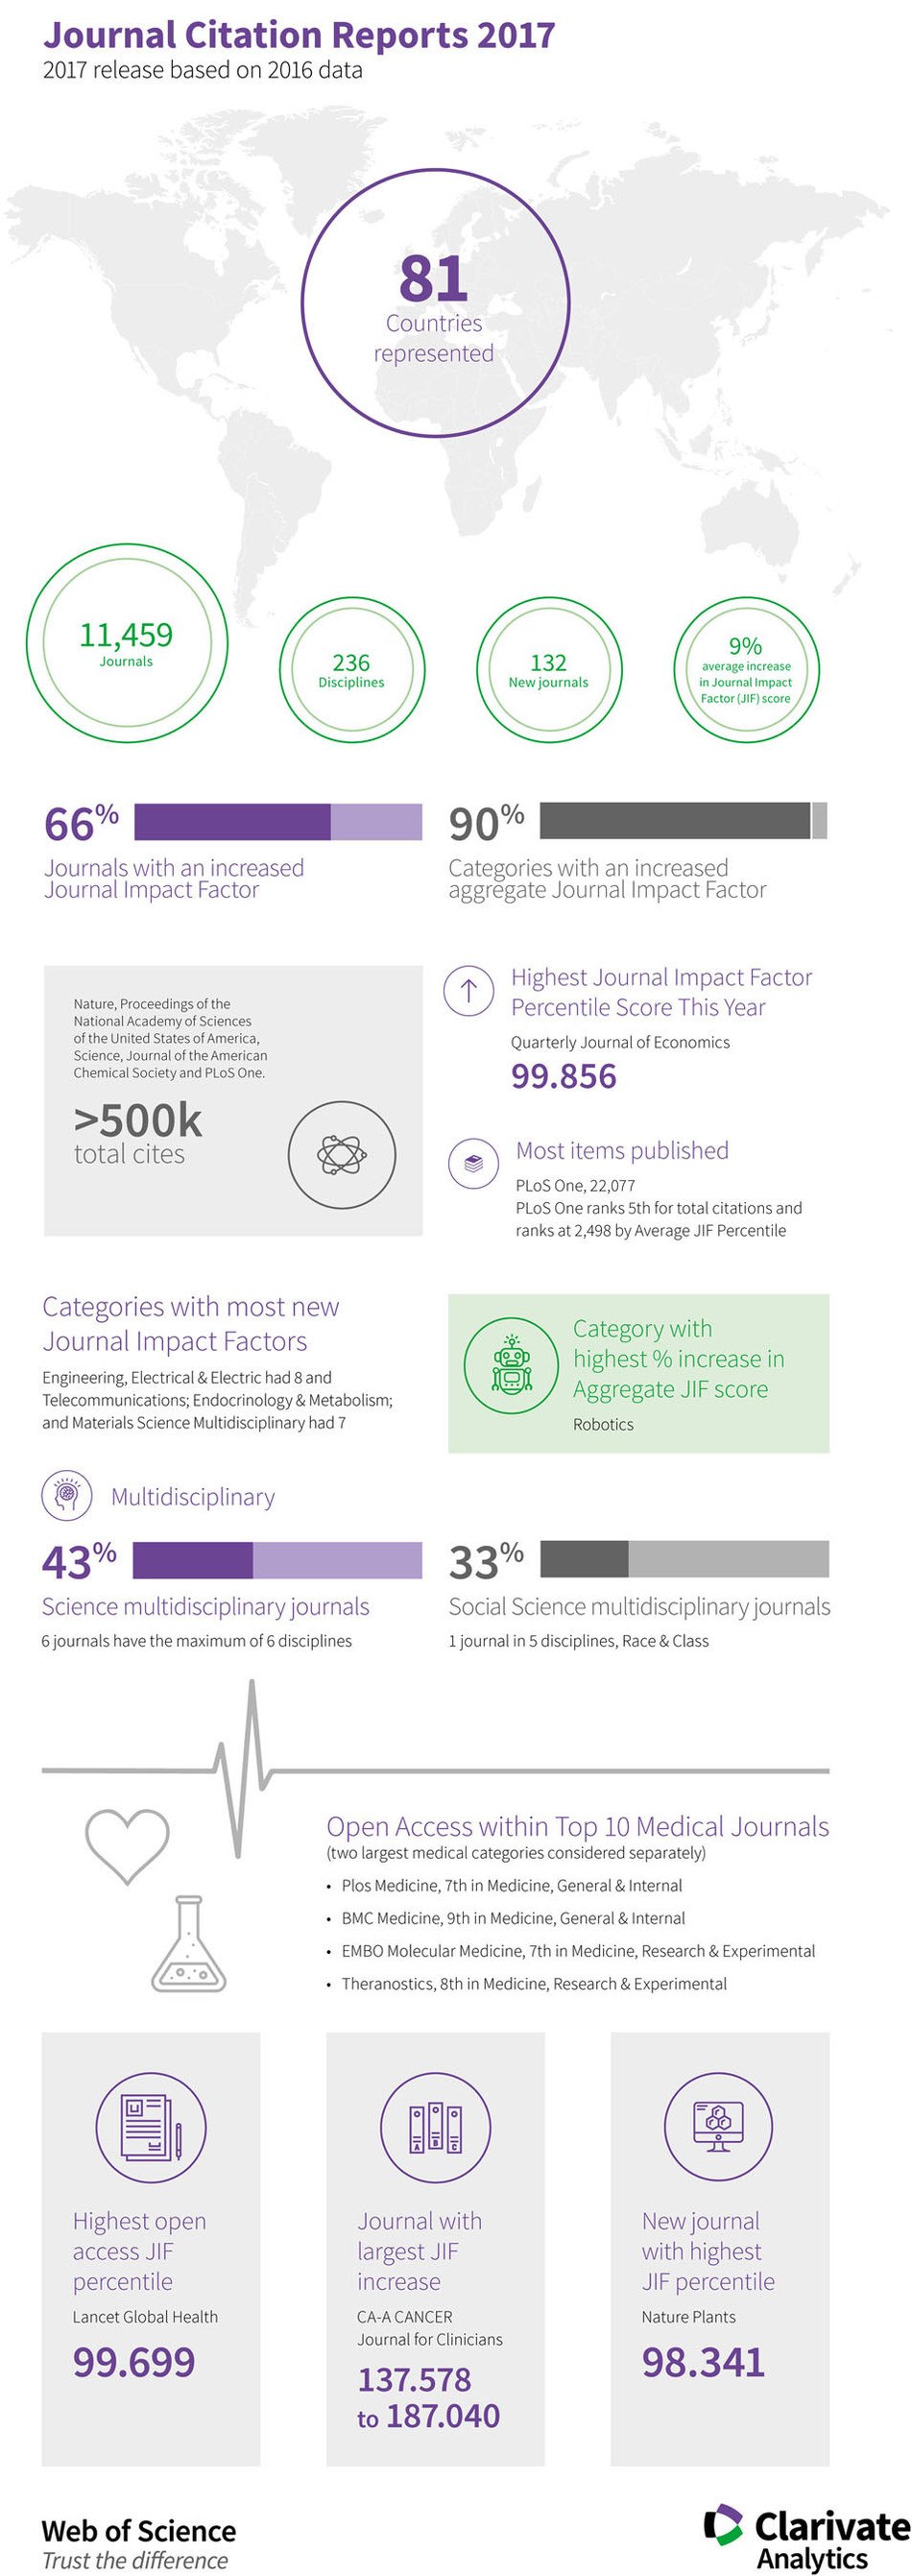 Infographic shares more data points related to this year's Clarivate Analytics Journal Citation Reports